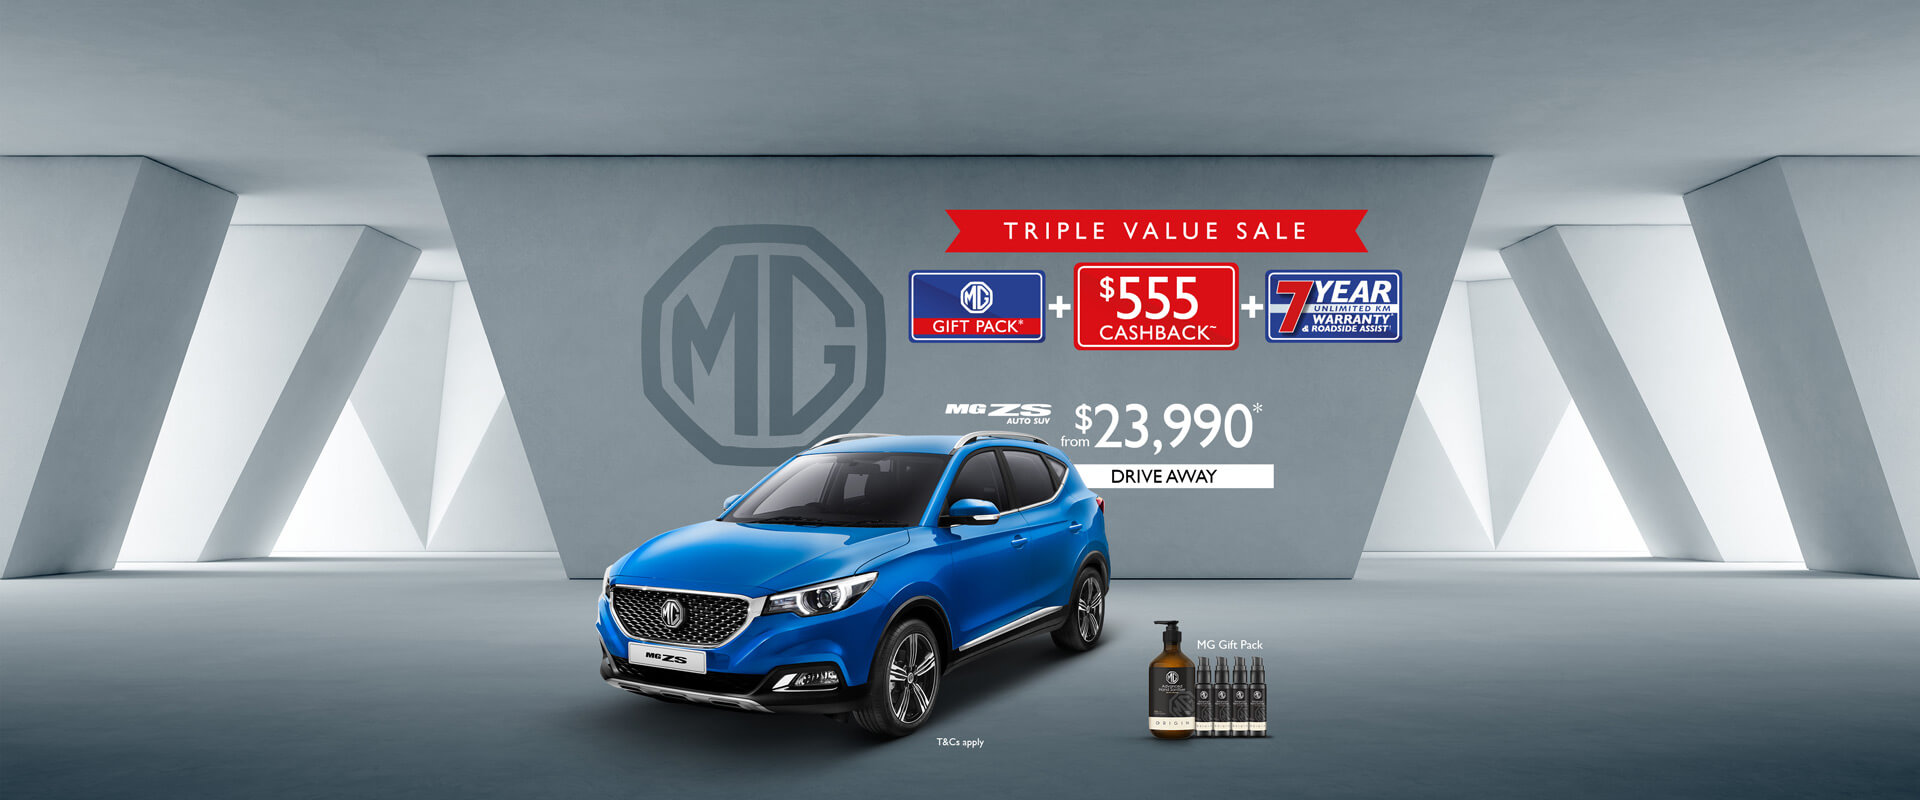 MG ZS - Triple Value Sale